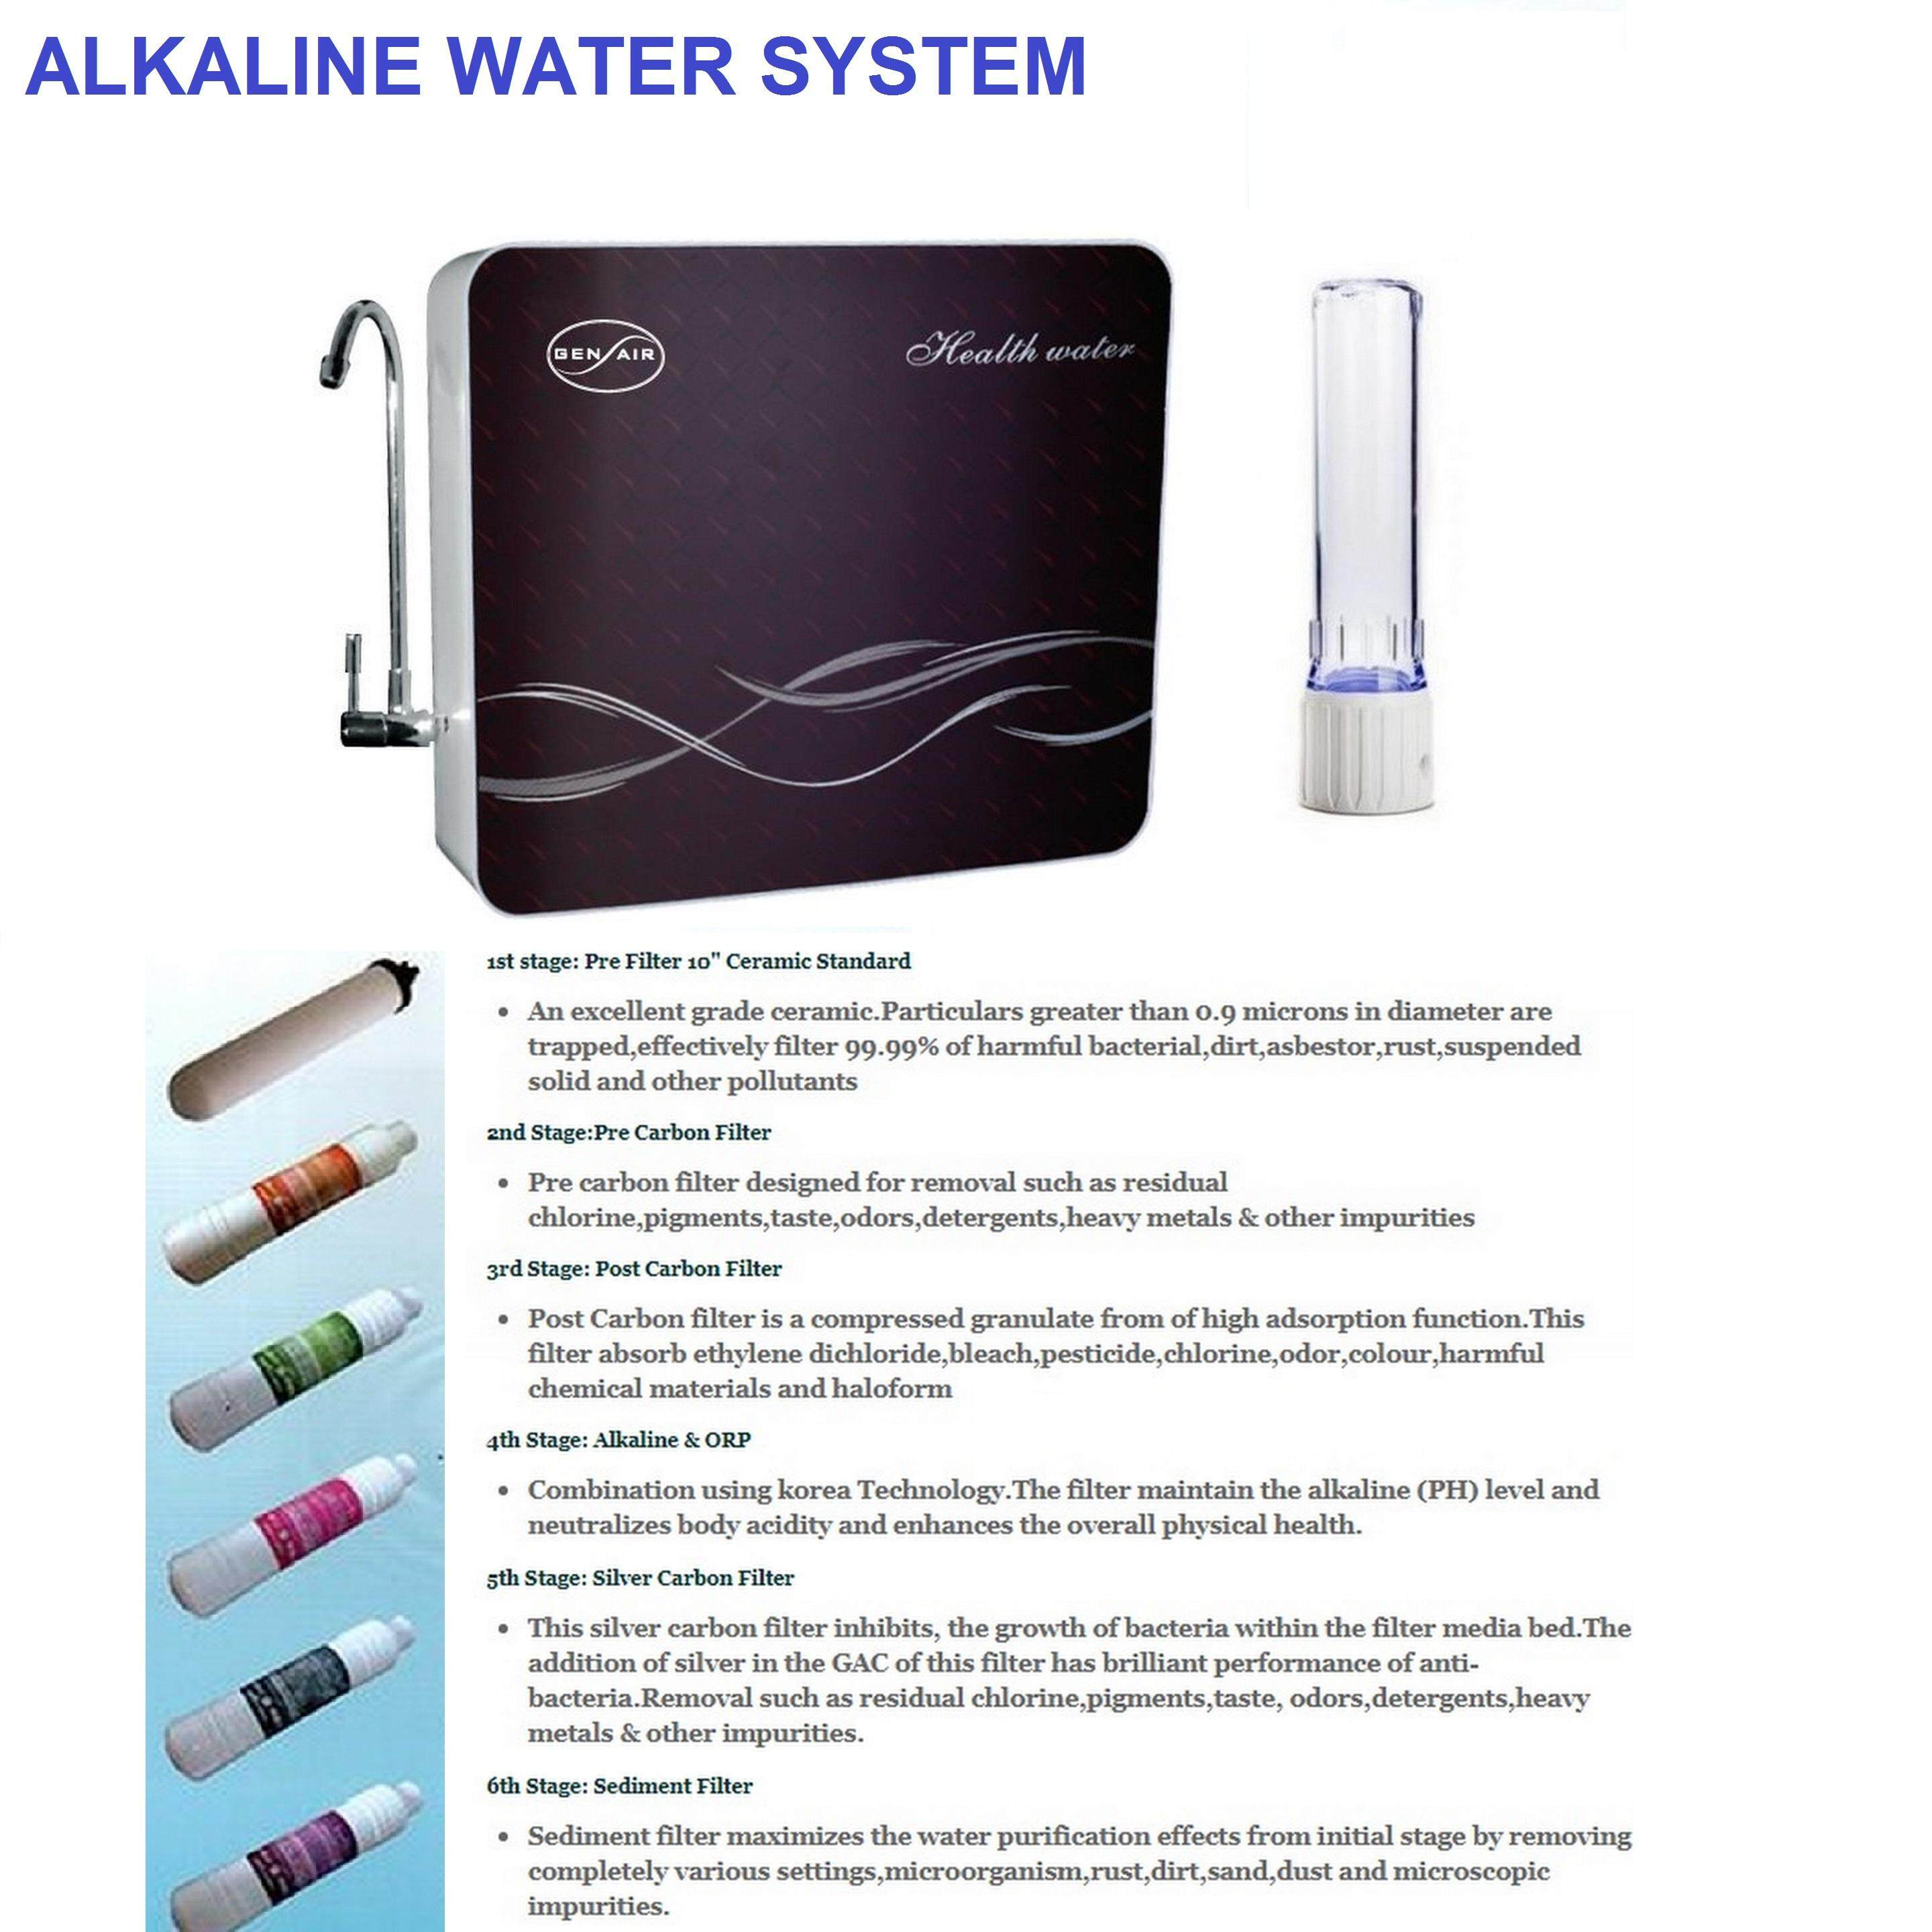 Gen Air Alkaline Water System With Faucet - 6 Stages Filter (693)